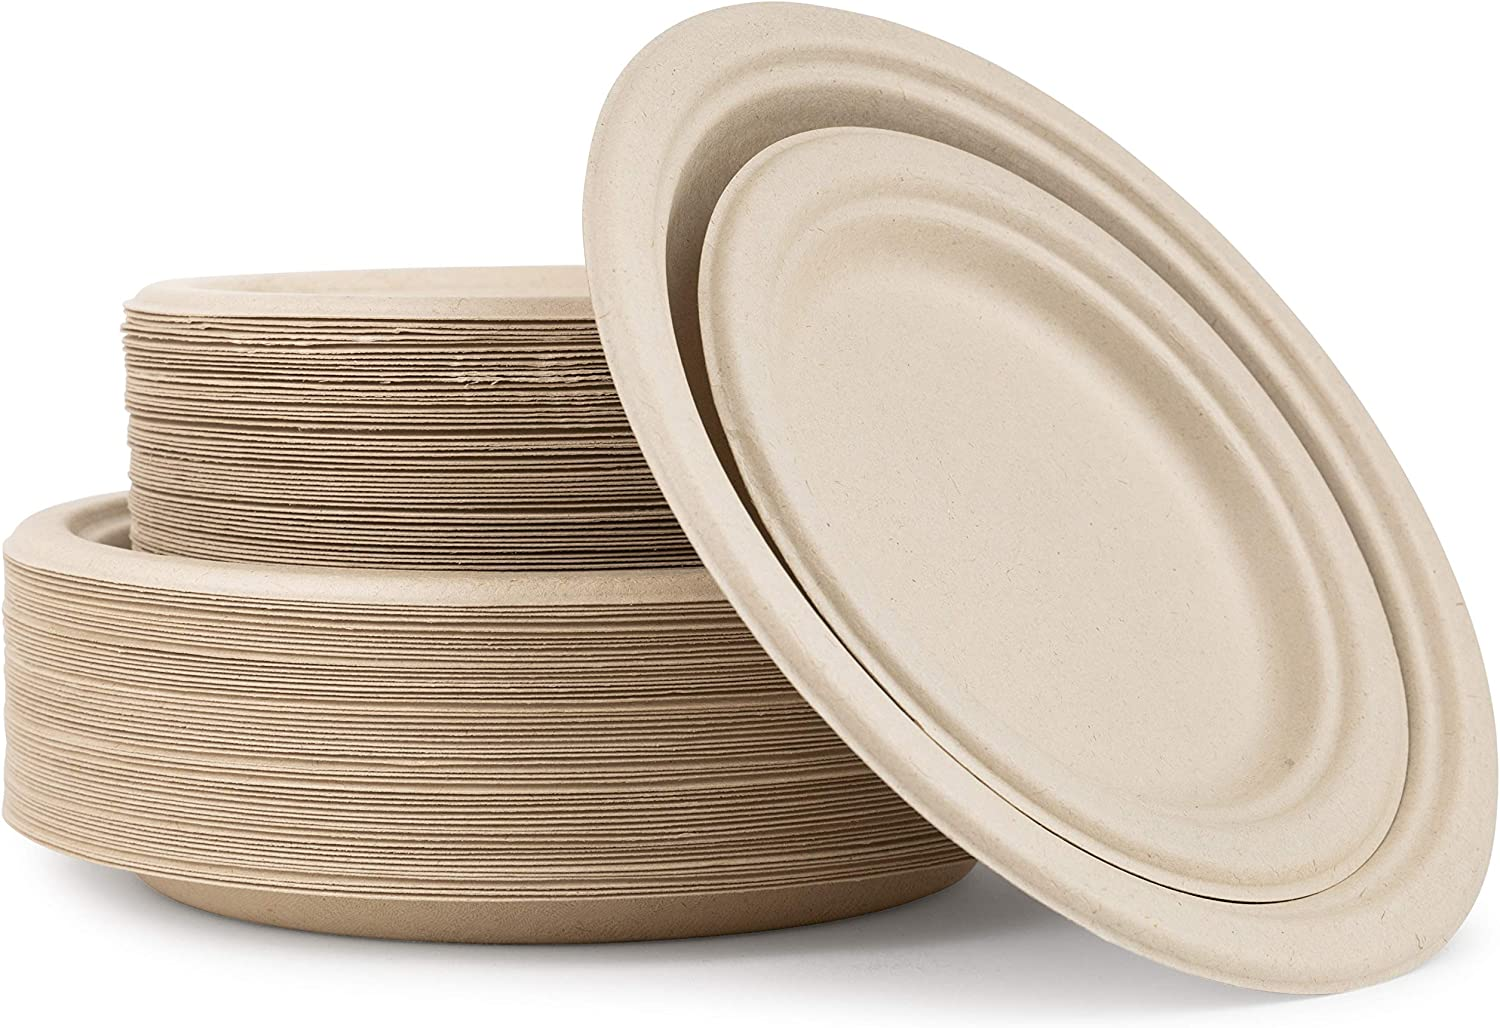 Pro Dispose Wheat Straw//Bagasse Plates 50 Lunch Plates and 50 Dessert Plates 100/% Compostable Biodegradable Plant Based Process Chemical Free and Eco Friendly Plates for Your Next Barbeque